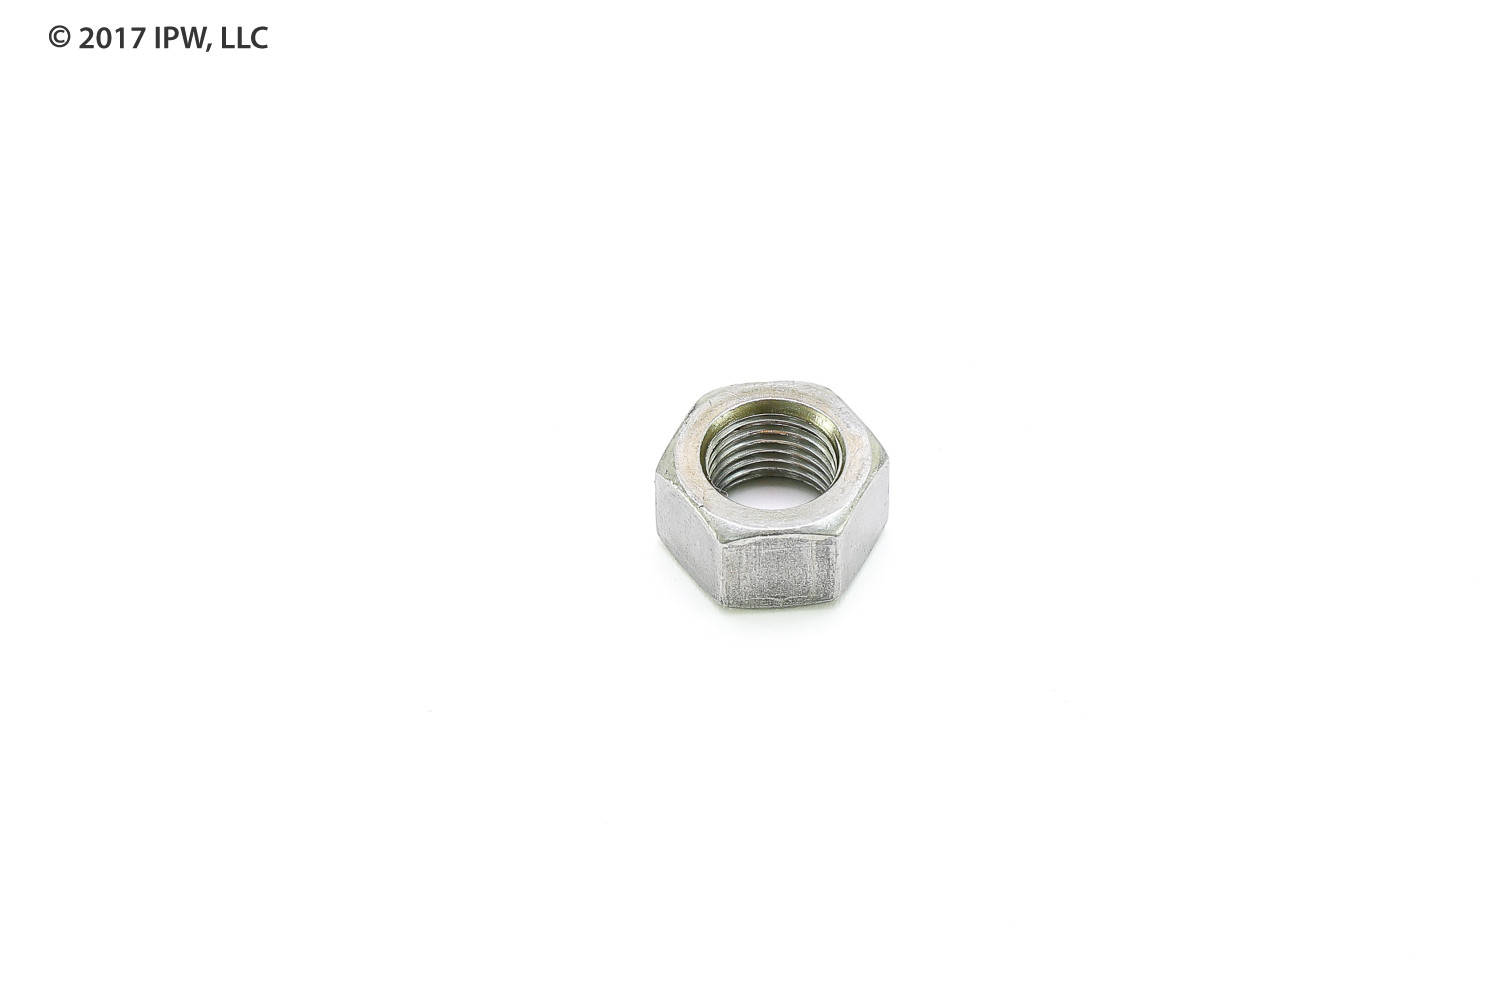 Spence Engineering 05-02877-00 DIAPHRAGM NUT